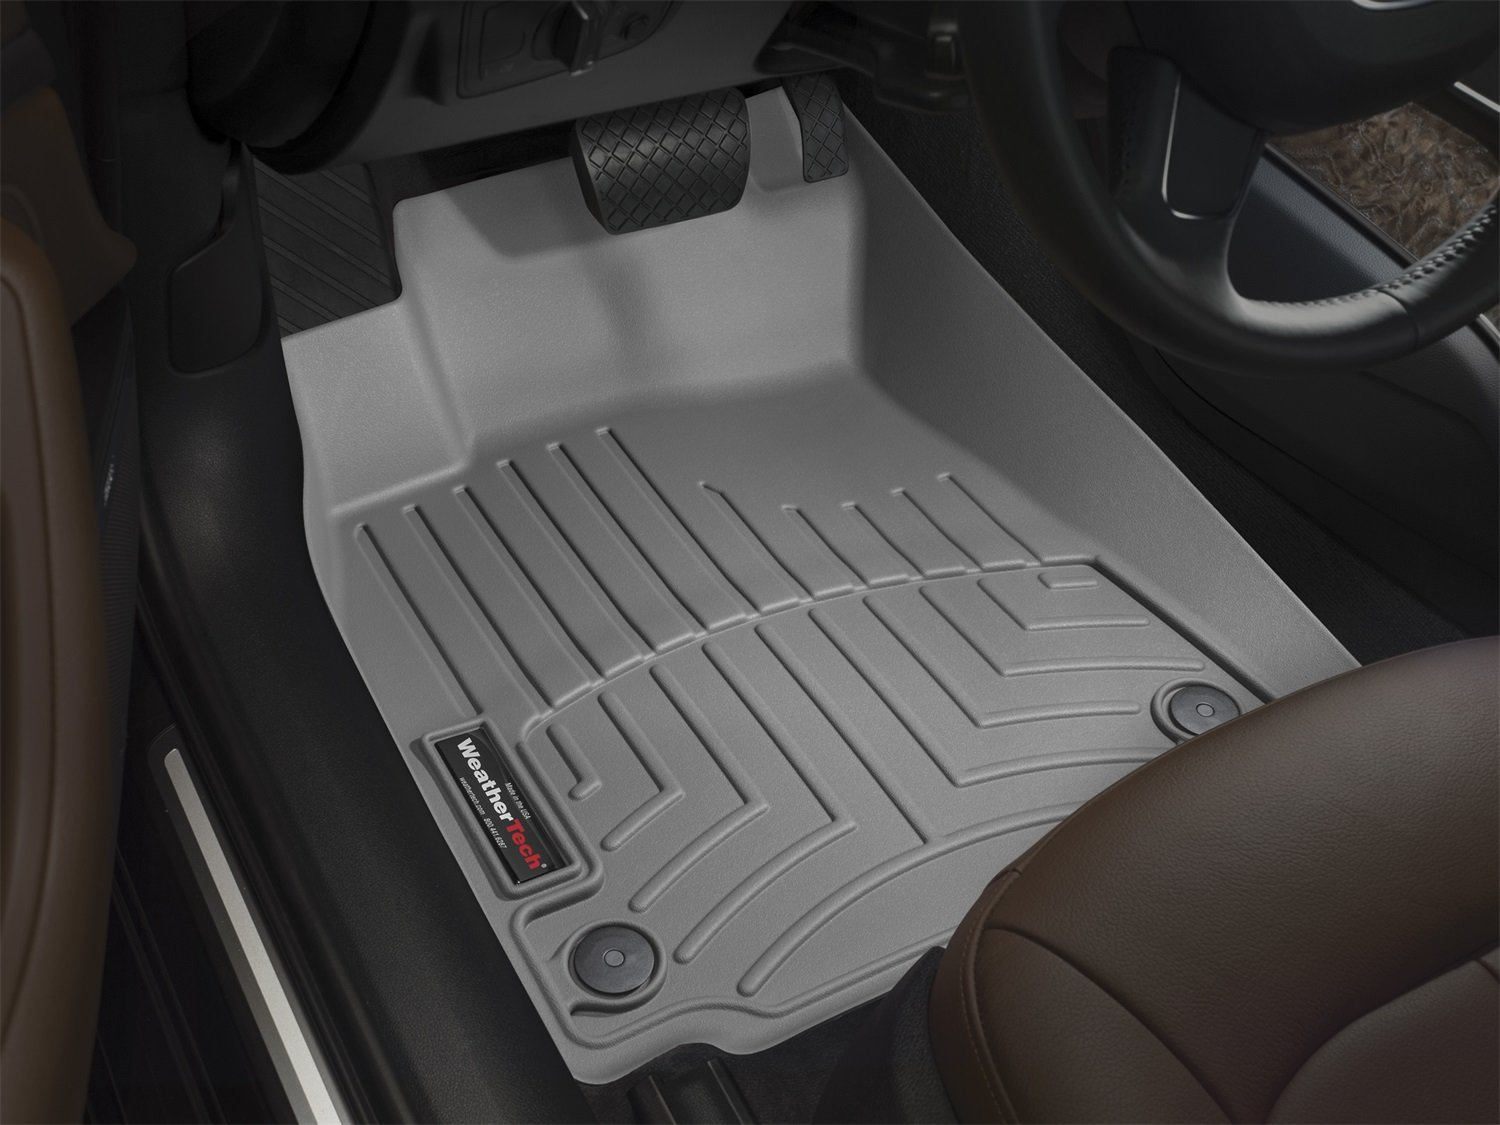 How to unlock weathertech floor mats - Amazon Com Weathertech Custom Fit Front Floorliner For Dodge Ram 1500 Pickup Quadcab Grey Automotive